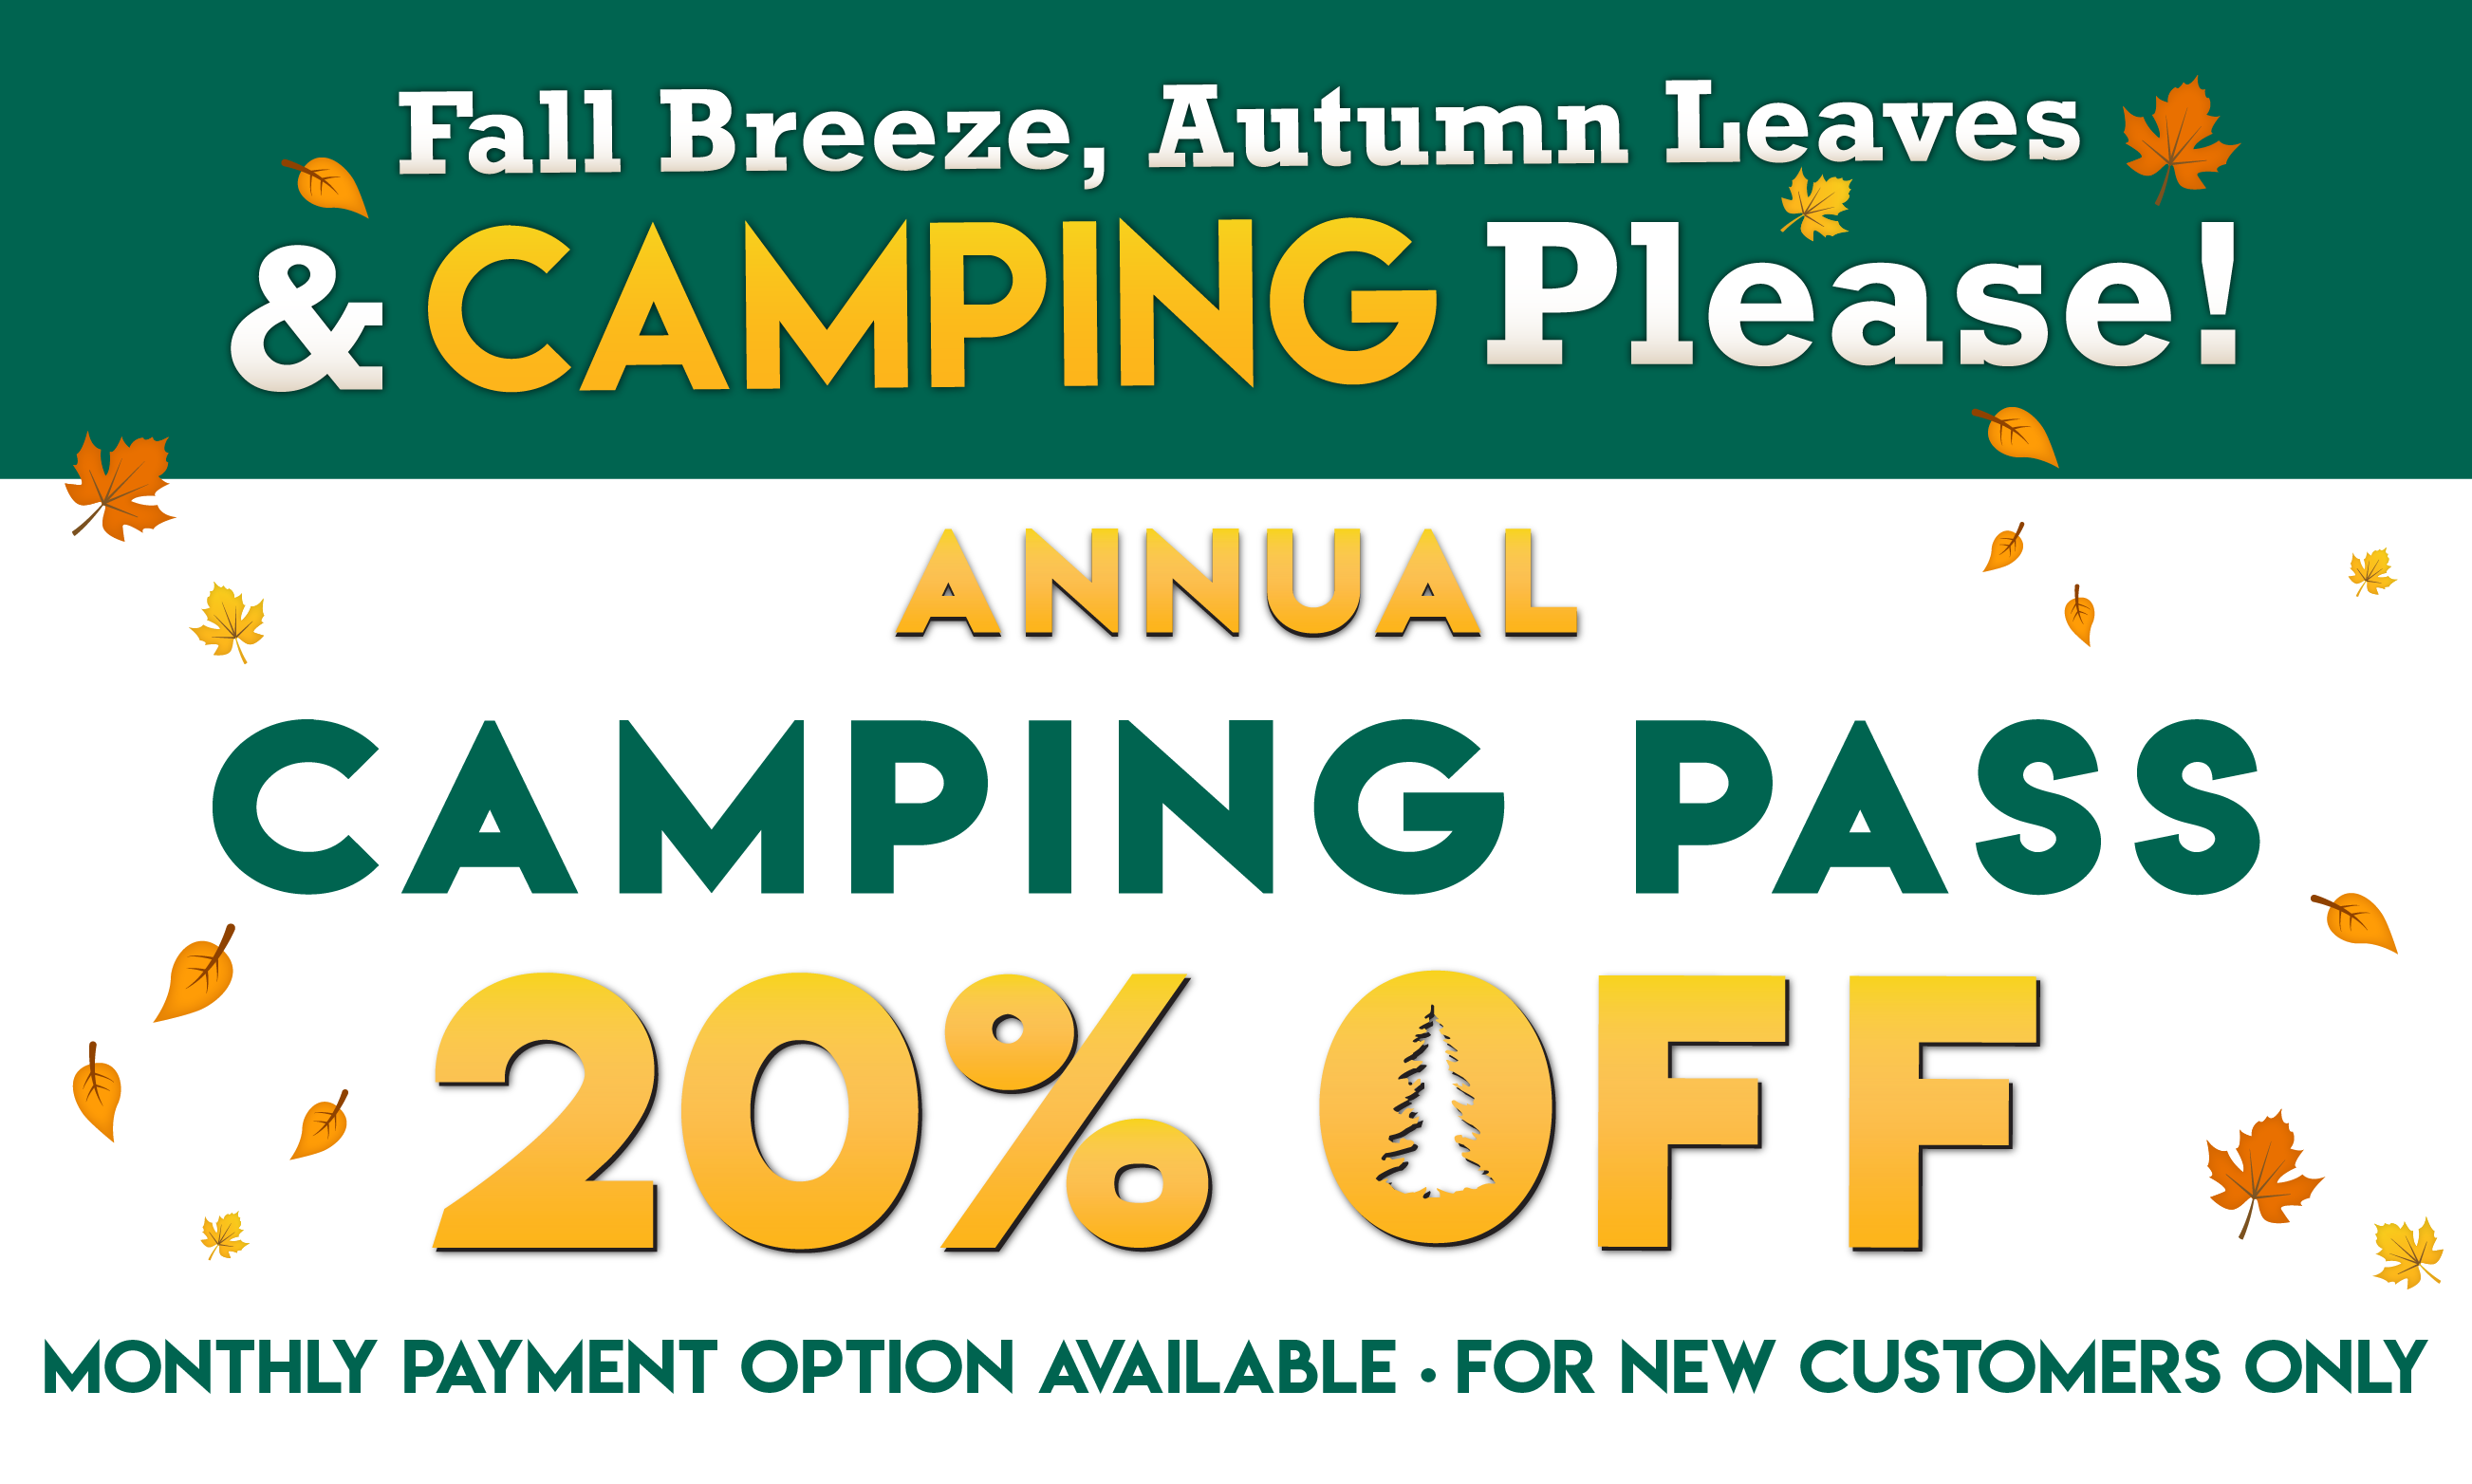 Fall Breeze, Autumn Leaves & Camping Please! 20% OFF Thousand Trails Camping Pass